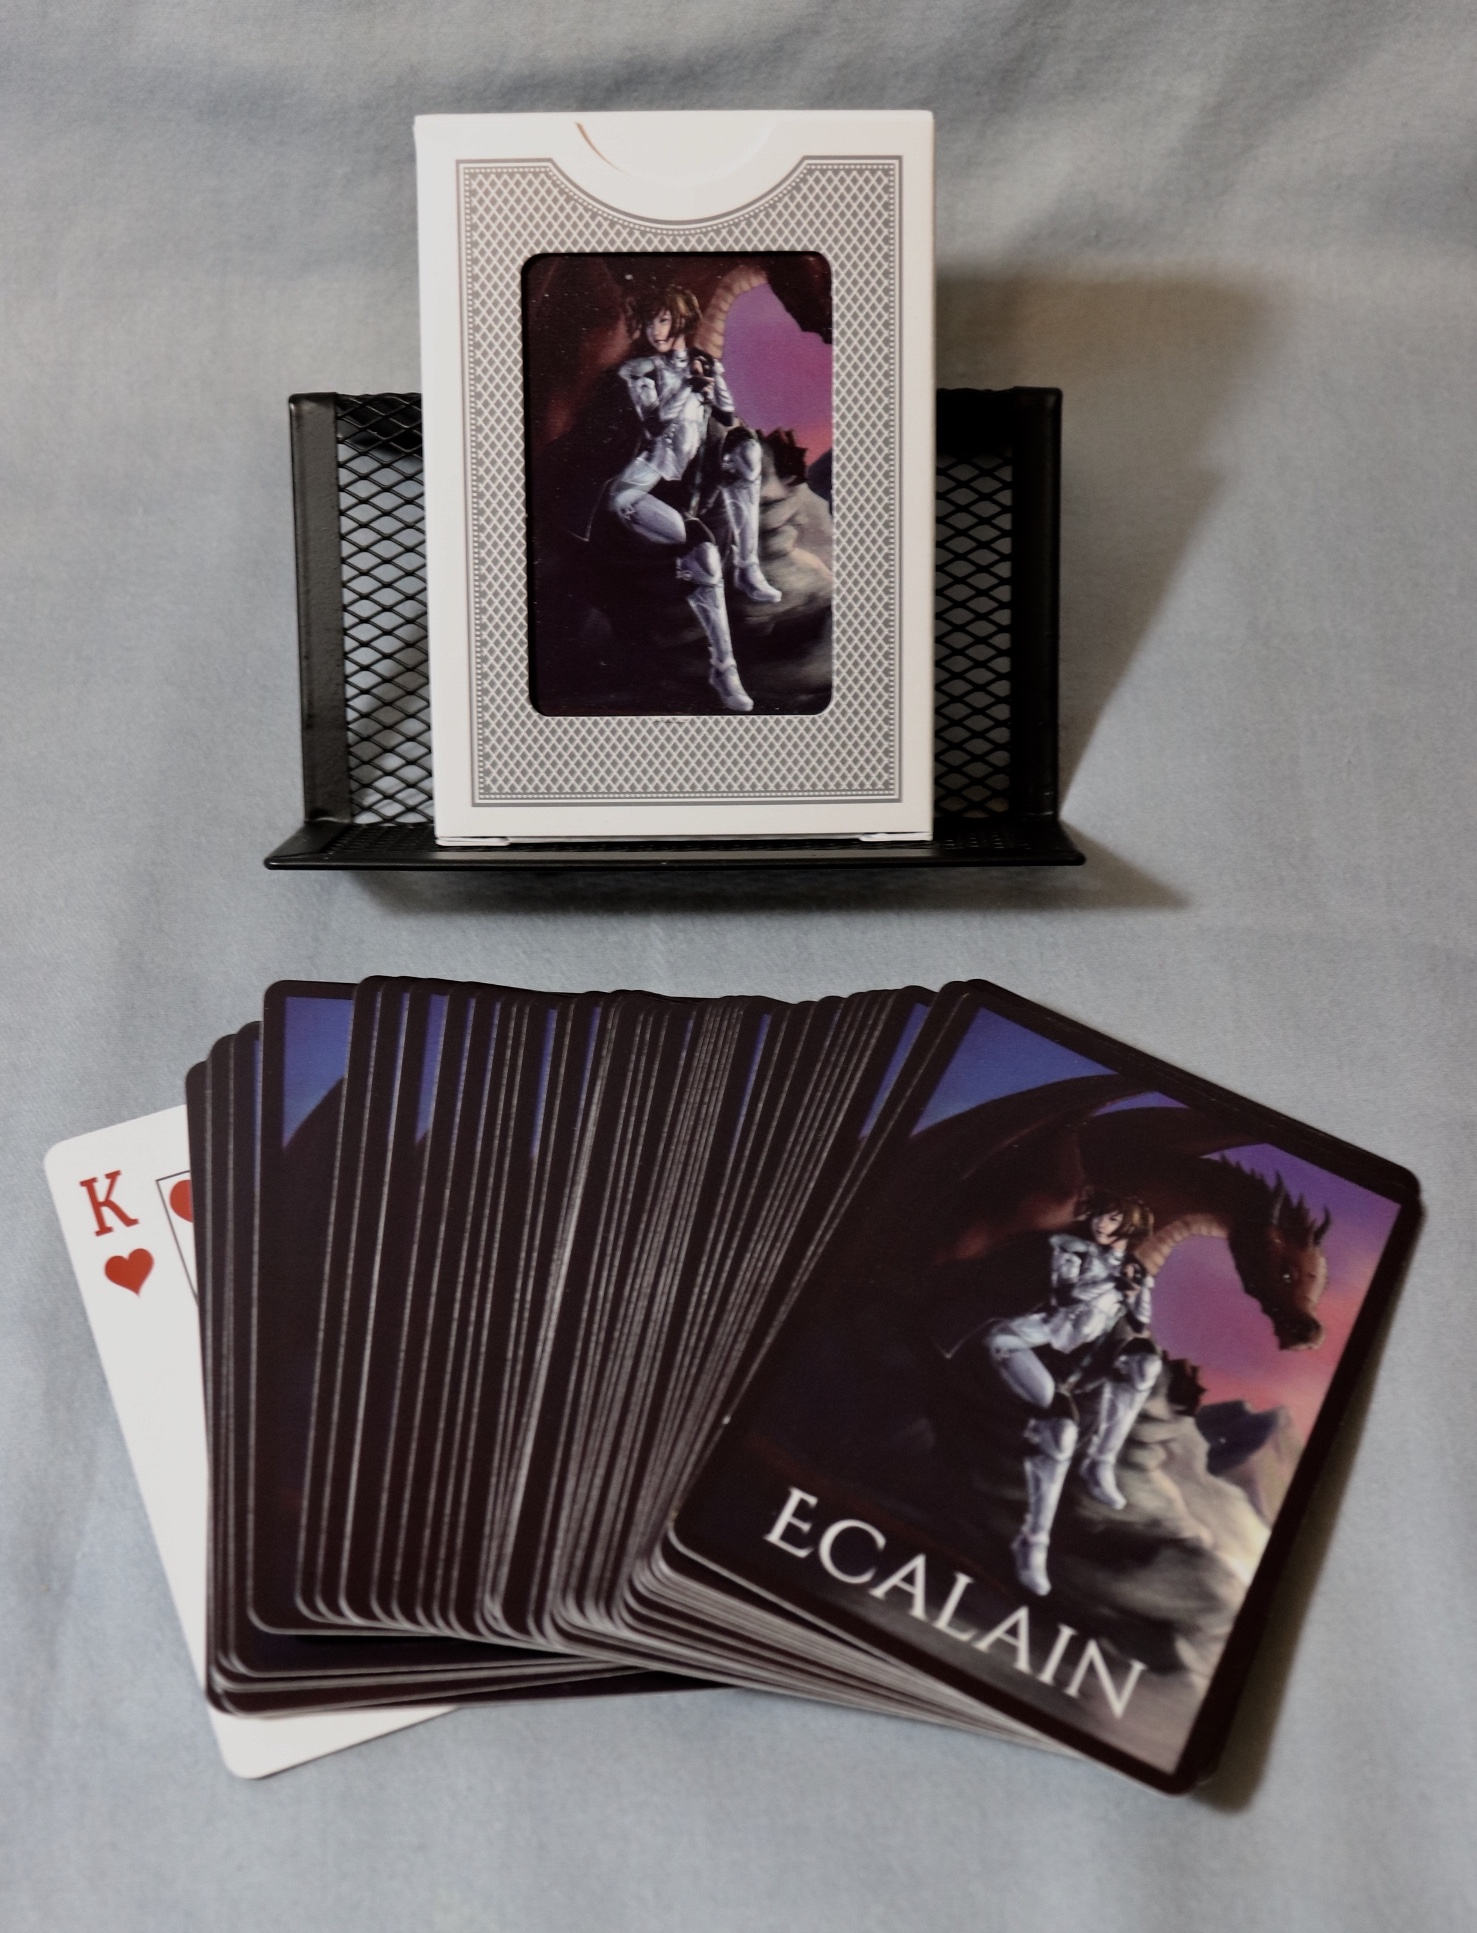 Playing Cards – Ecalain